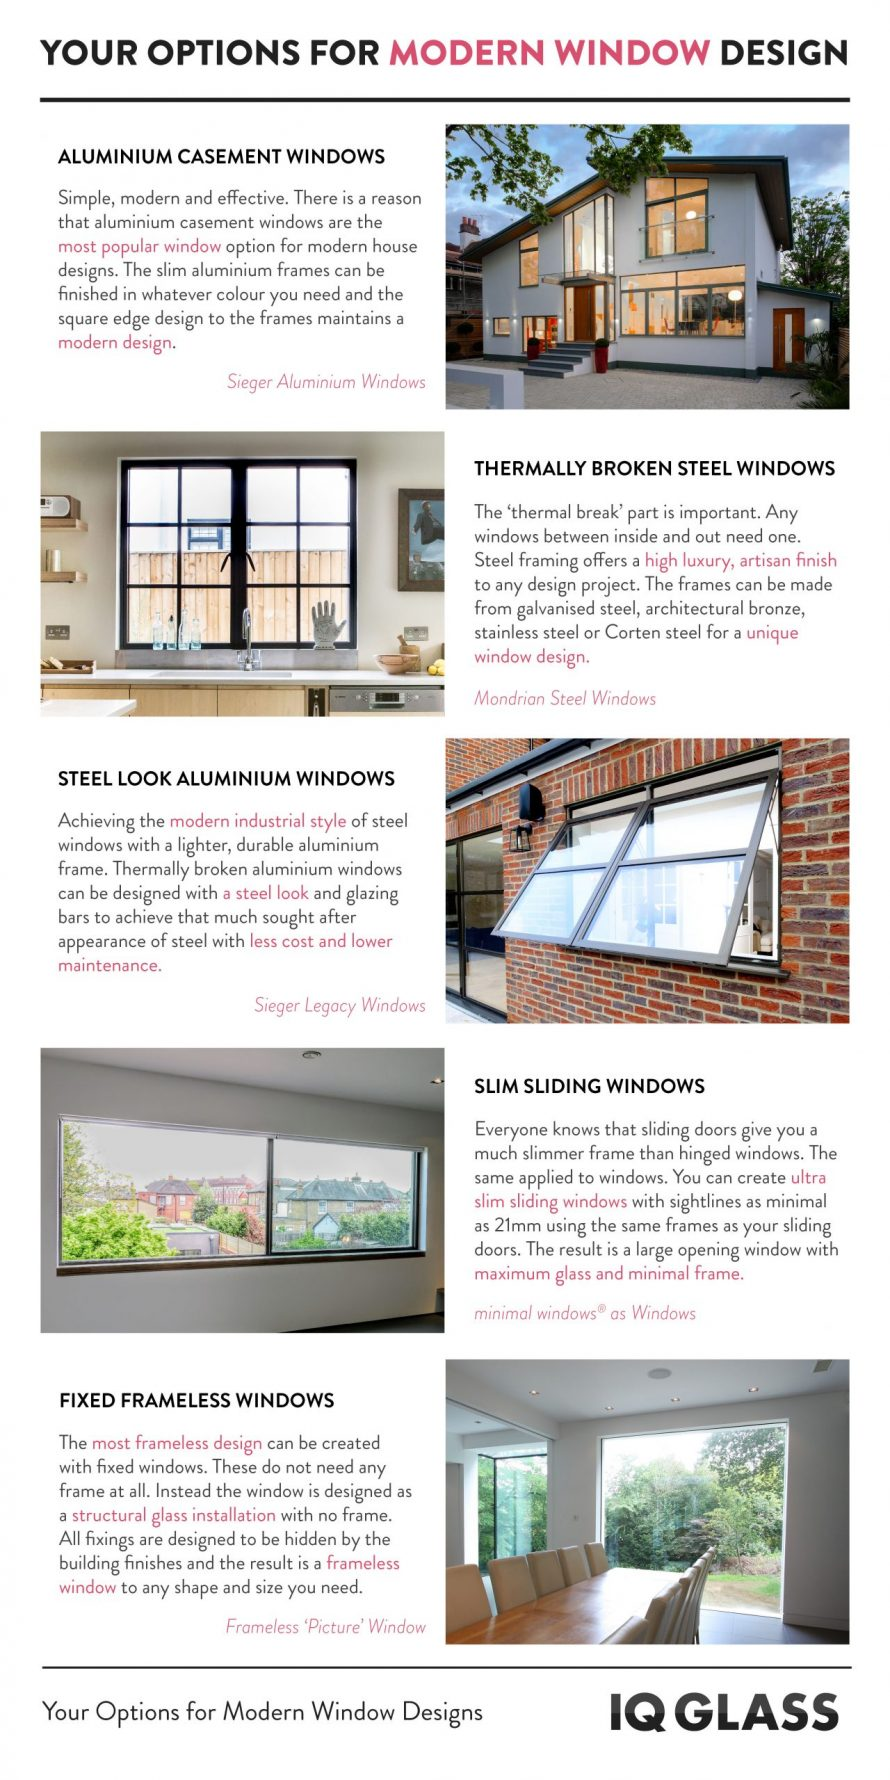 Infographic showing different window options, including aluminium, steel look and frameless windows